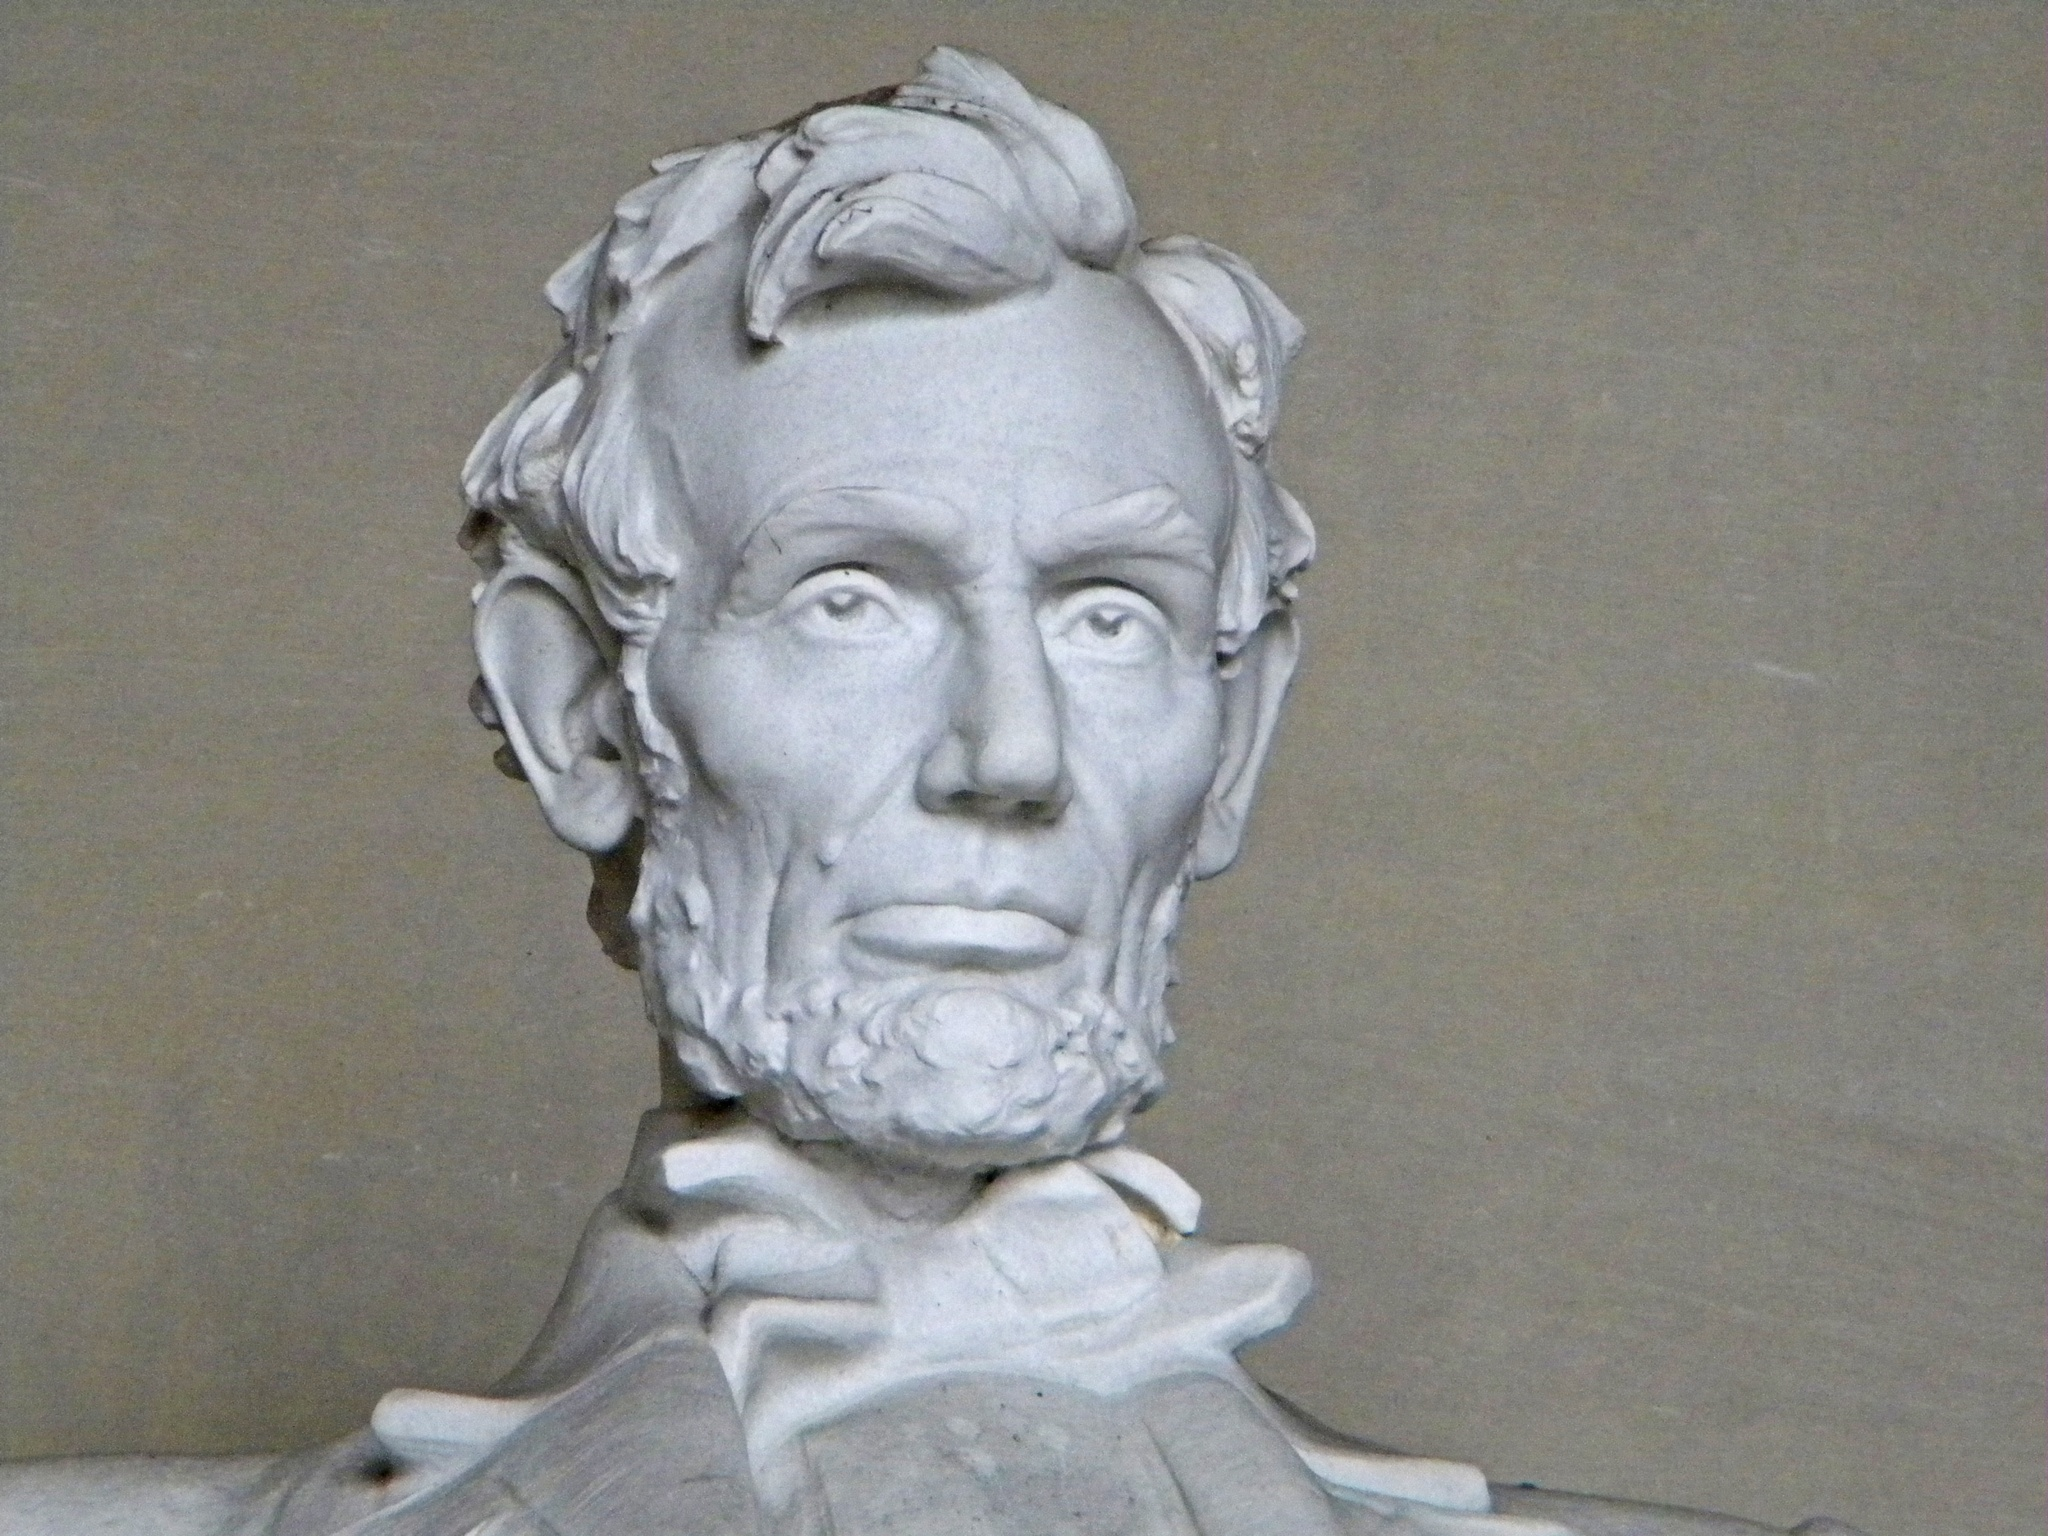 President Lincoln by Phillip W. Strunk